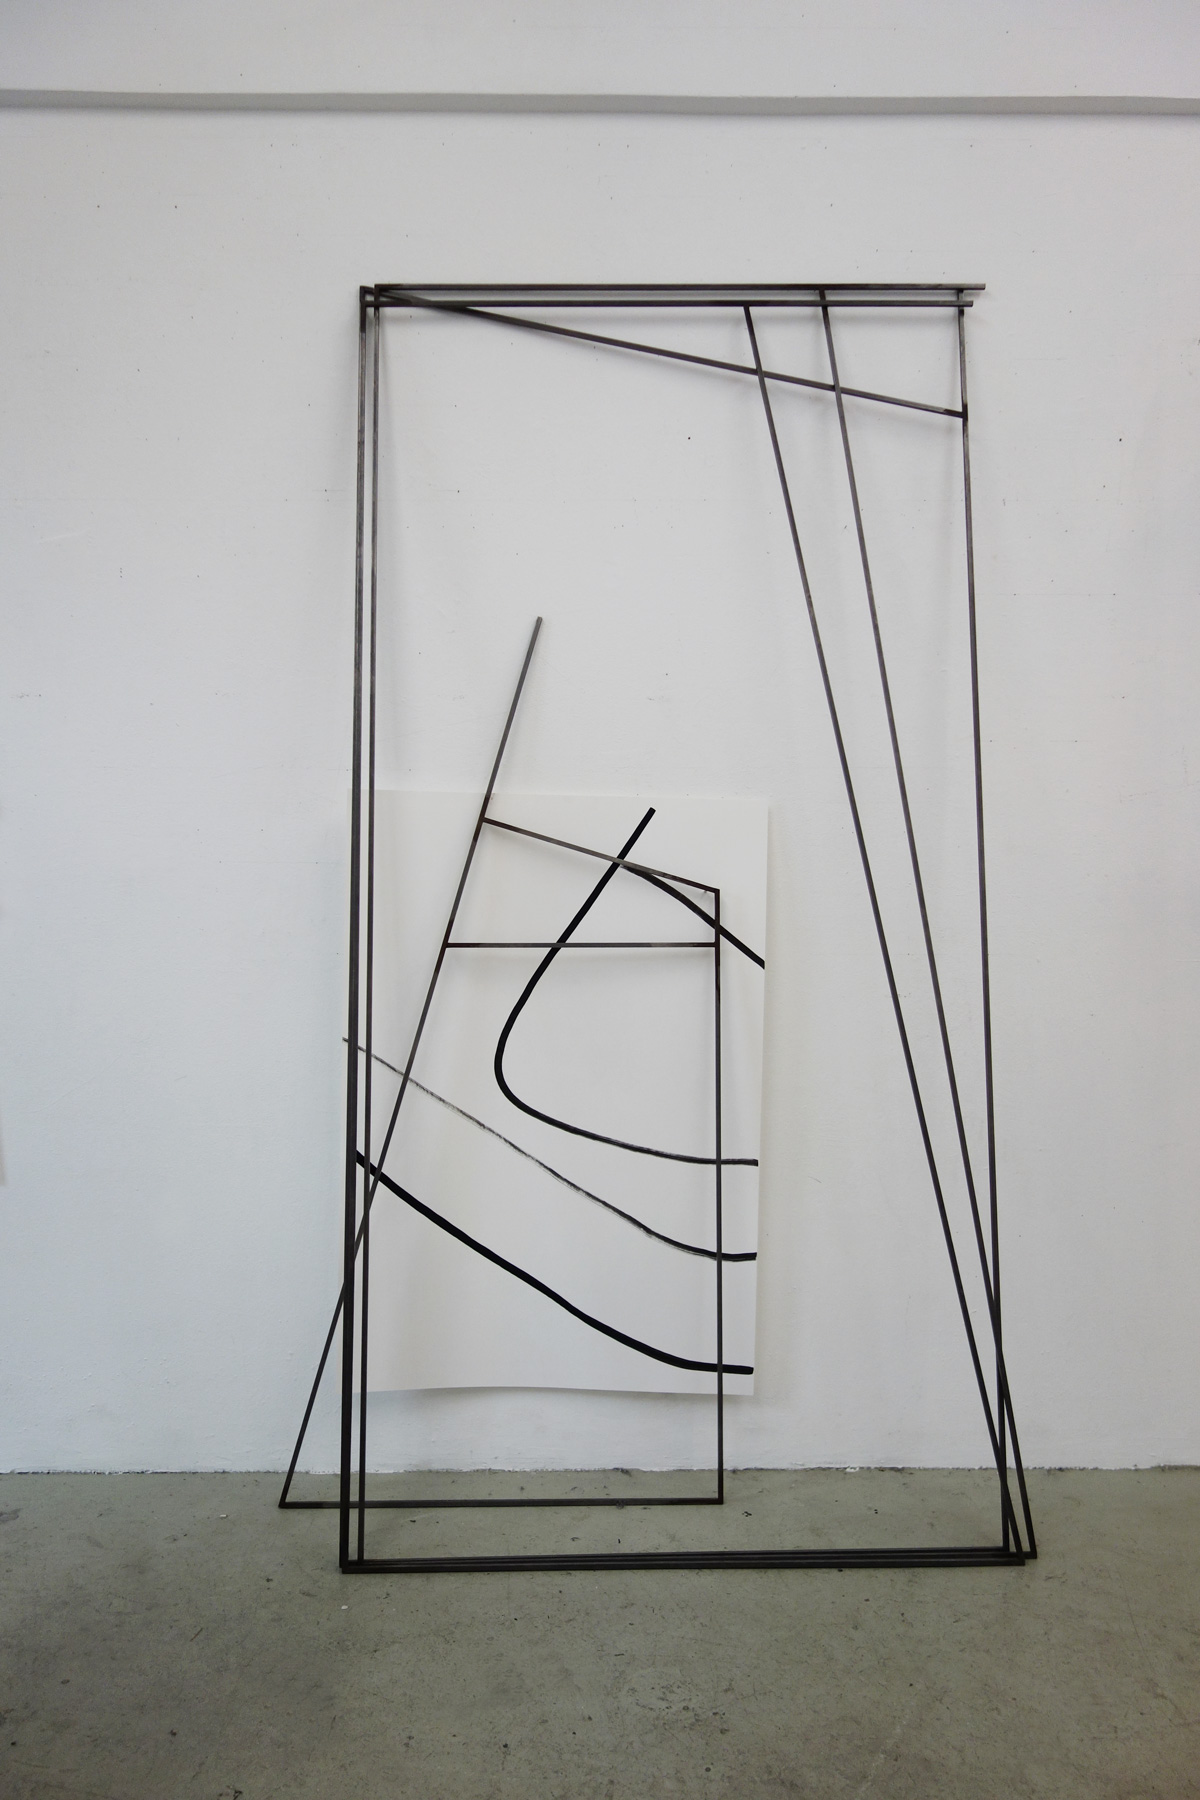 Nina Annabelle Märkl | Frames | Ink and steel drawing | 210 x 120 x 40 cm | 2018